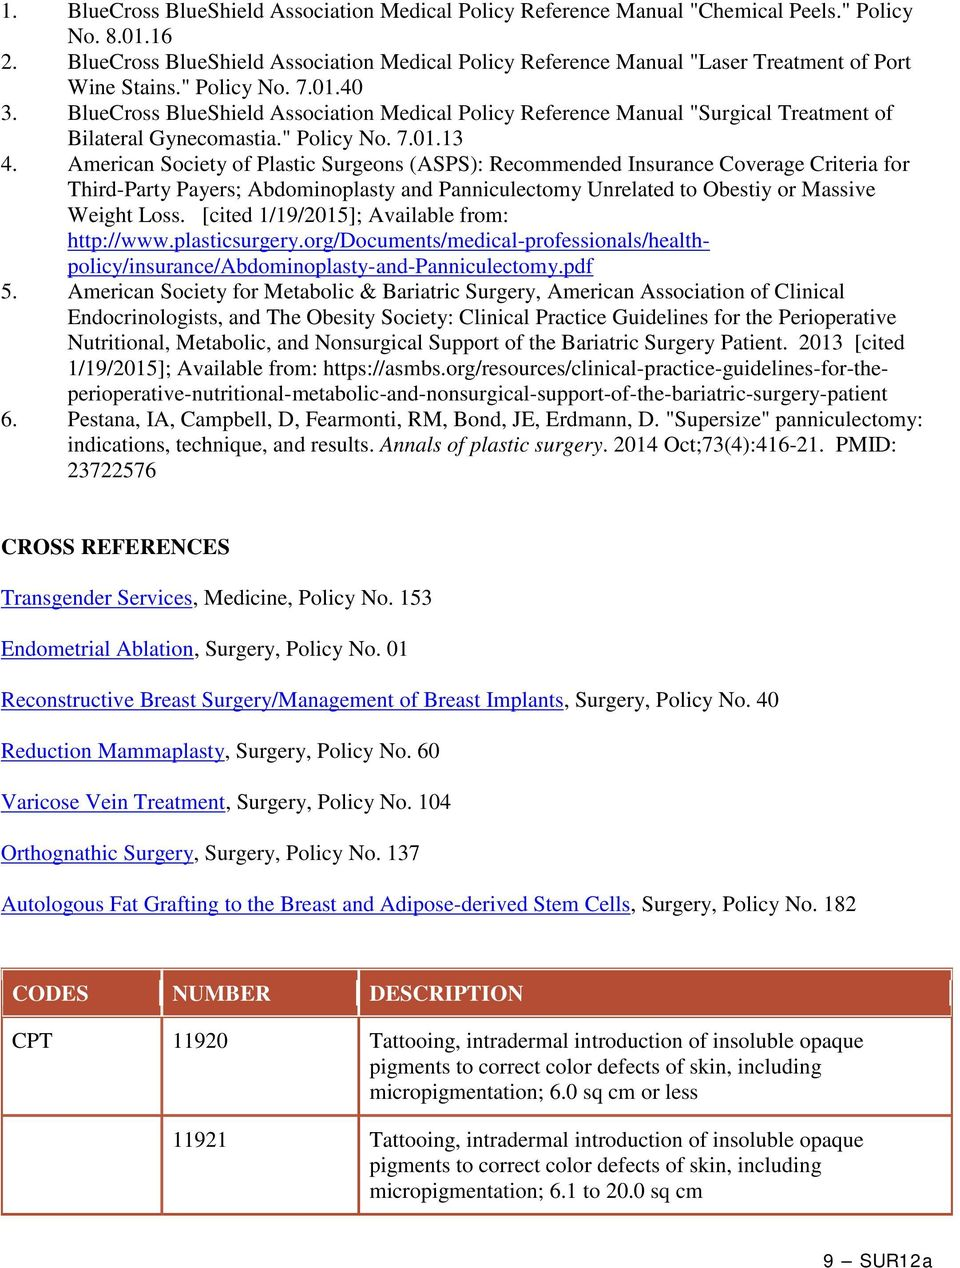 "BlueCross BlueShield Association Medical Policy Reference Manual ""Surgical Treatment of Bilateral Gynecomastia."" Policy No. 7.01.13 4."